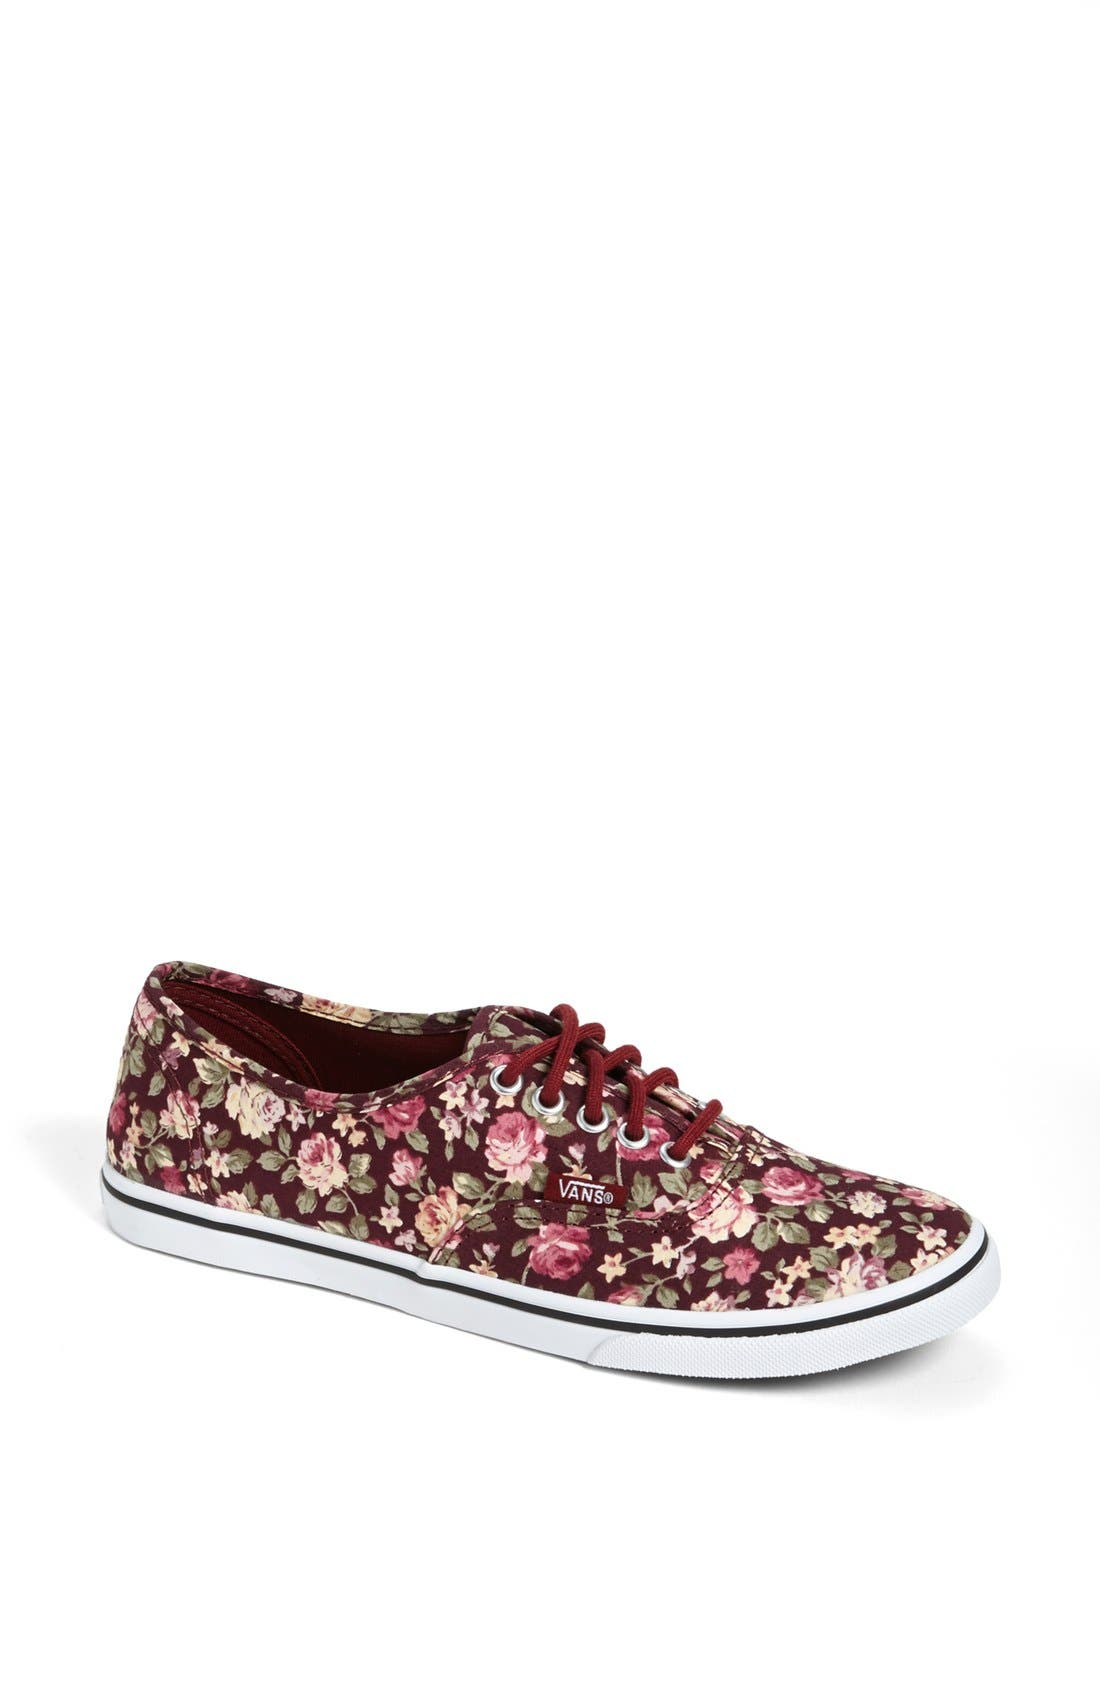 Main Image - Vans 'Authentic Lo Pro - Floral' Sneaker (Women)